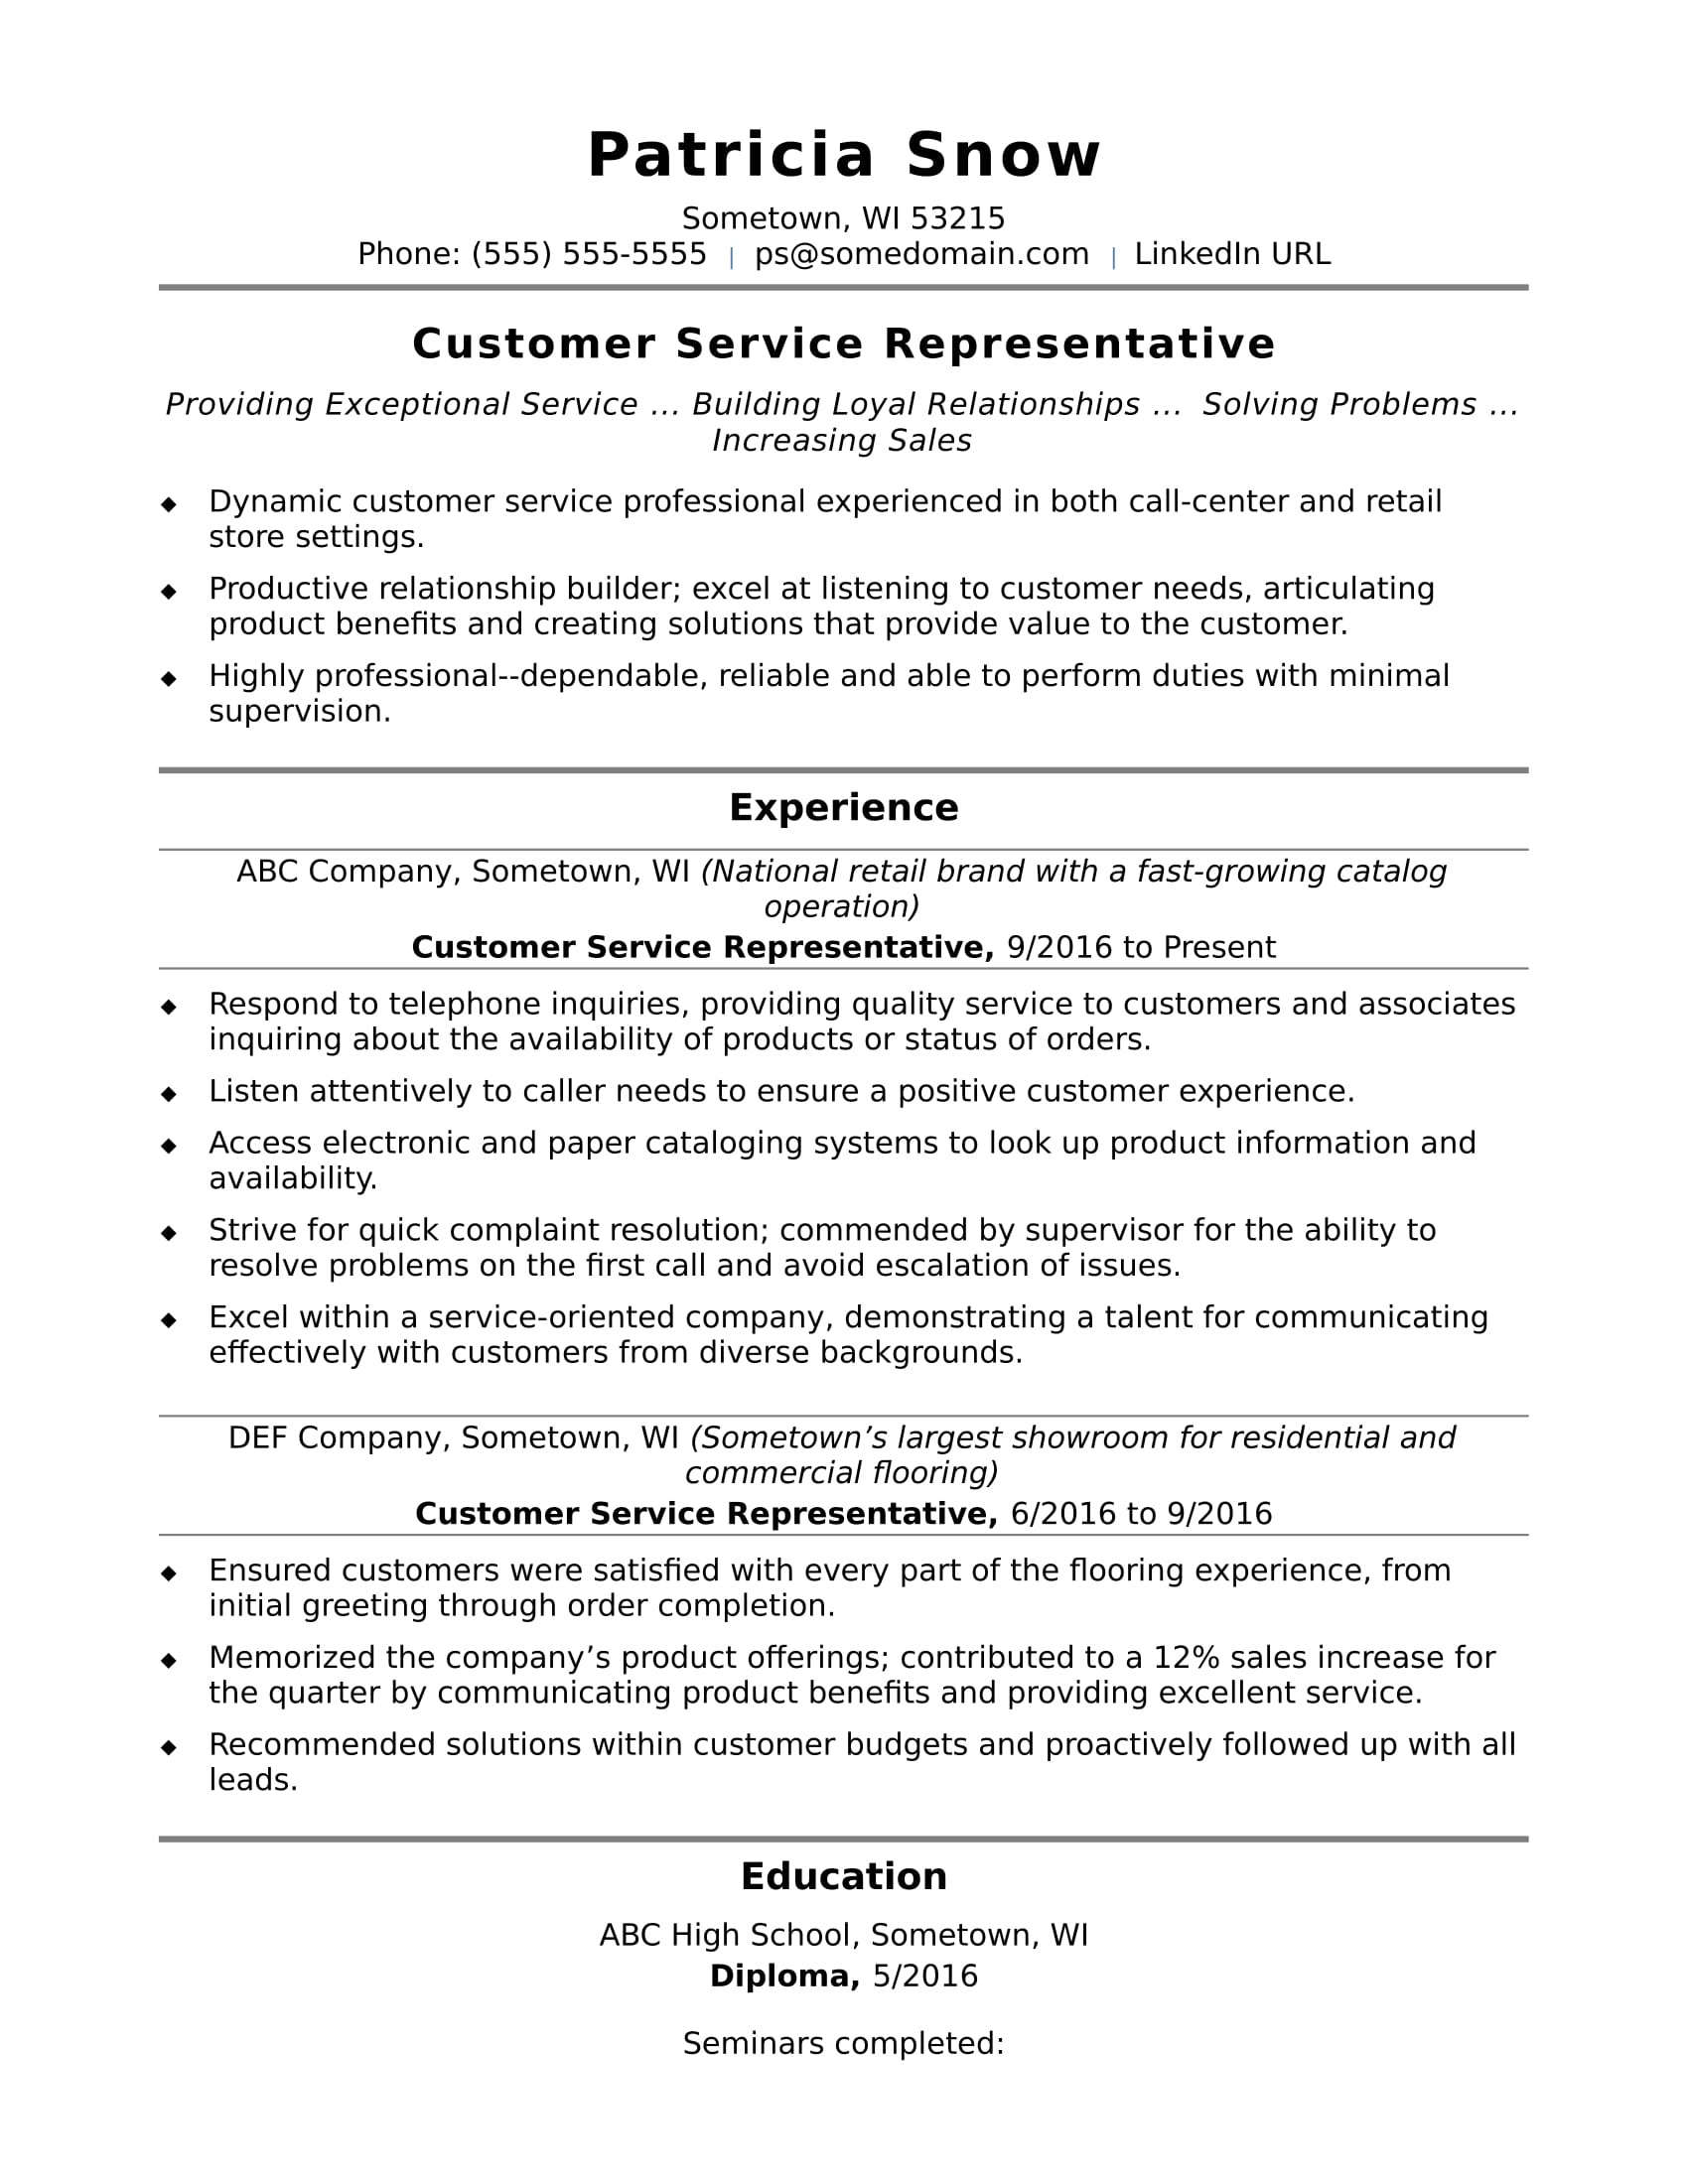 Customer Service Representative Resume Sample | Monster.com